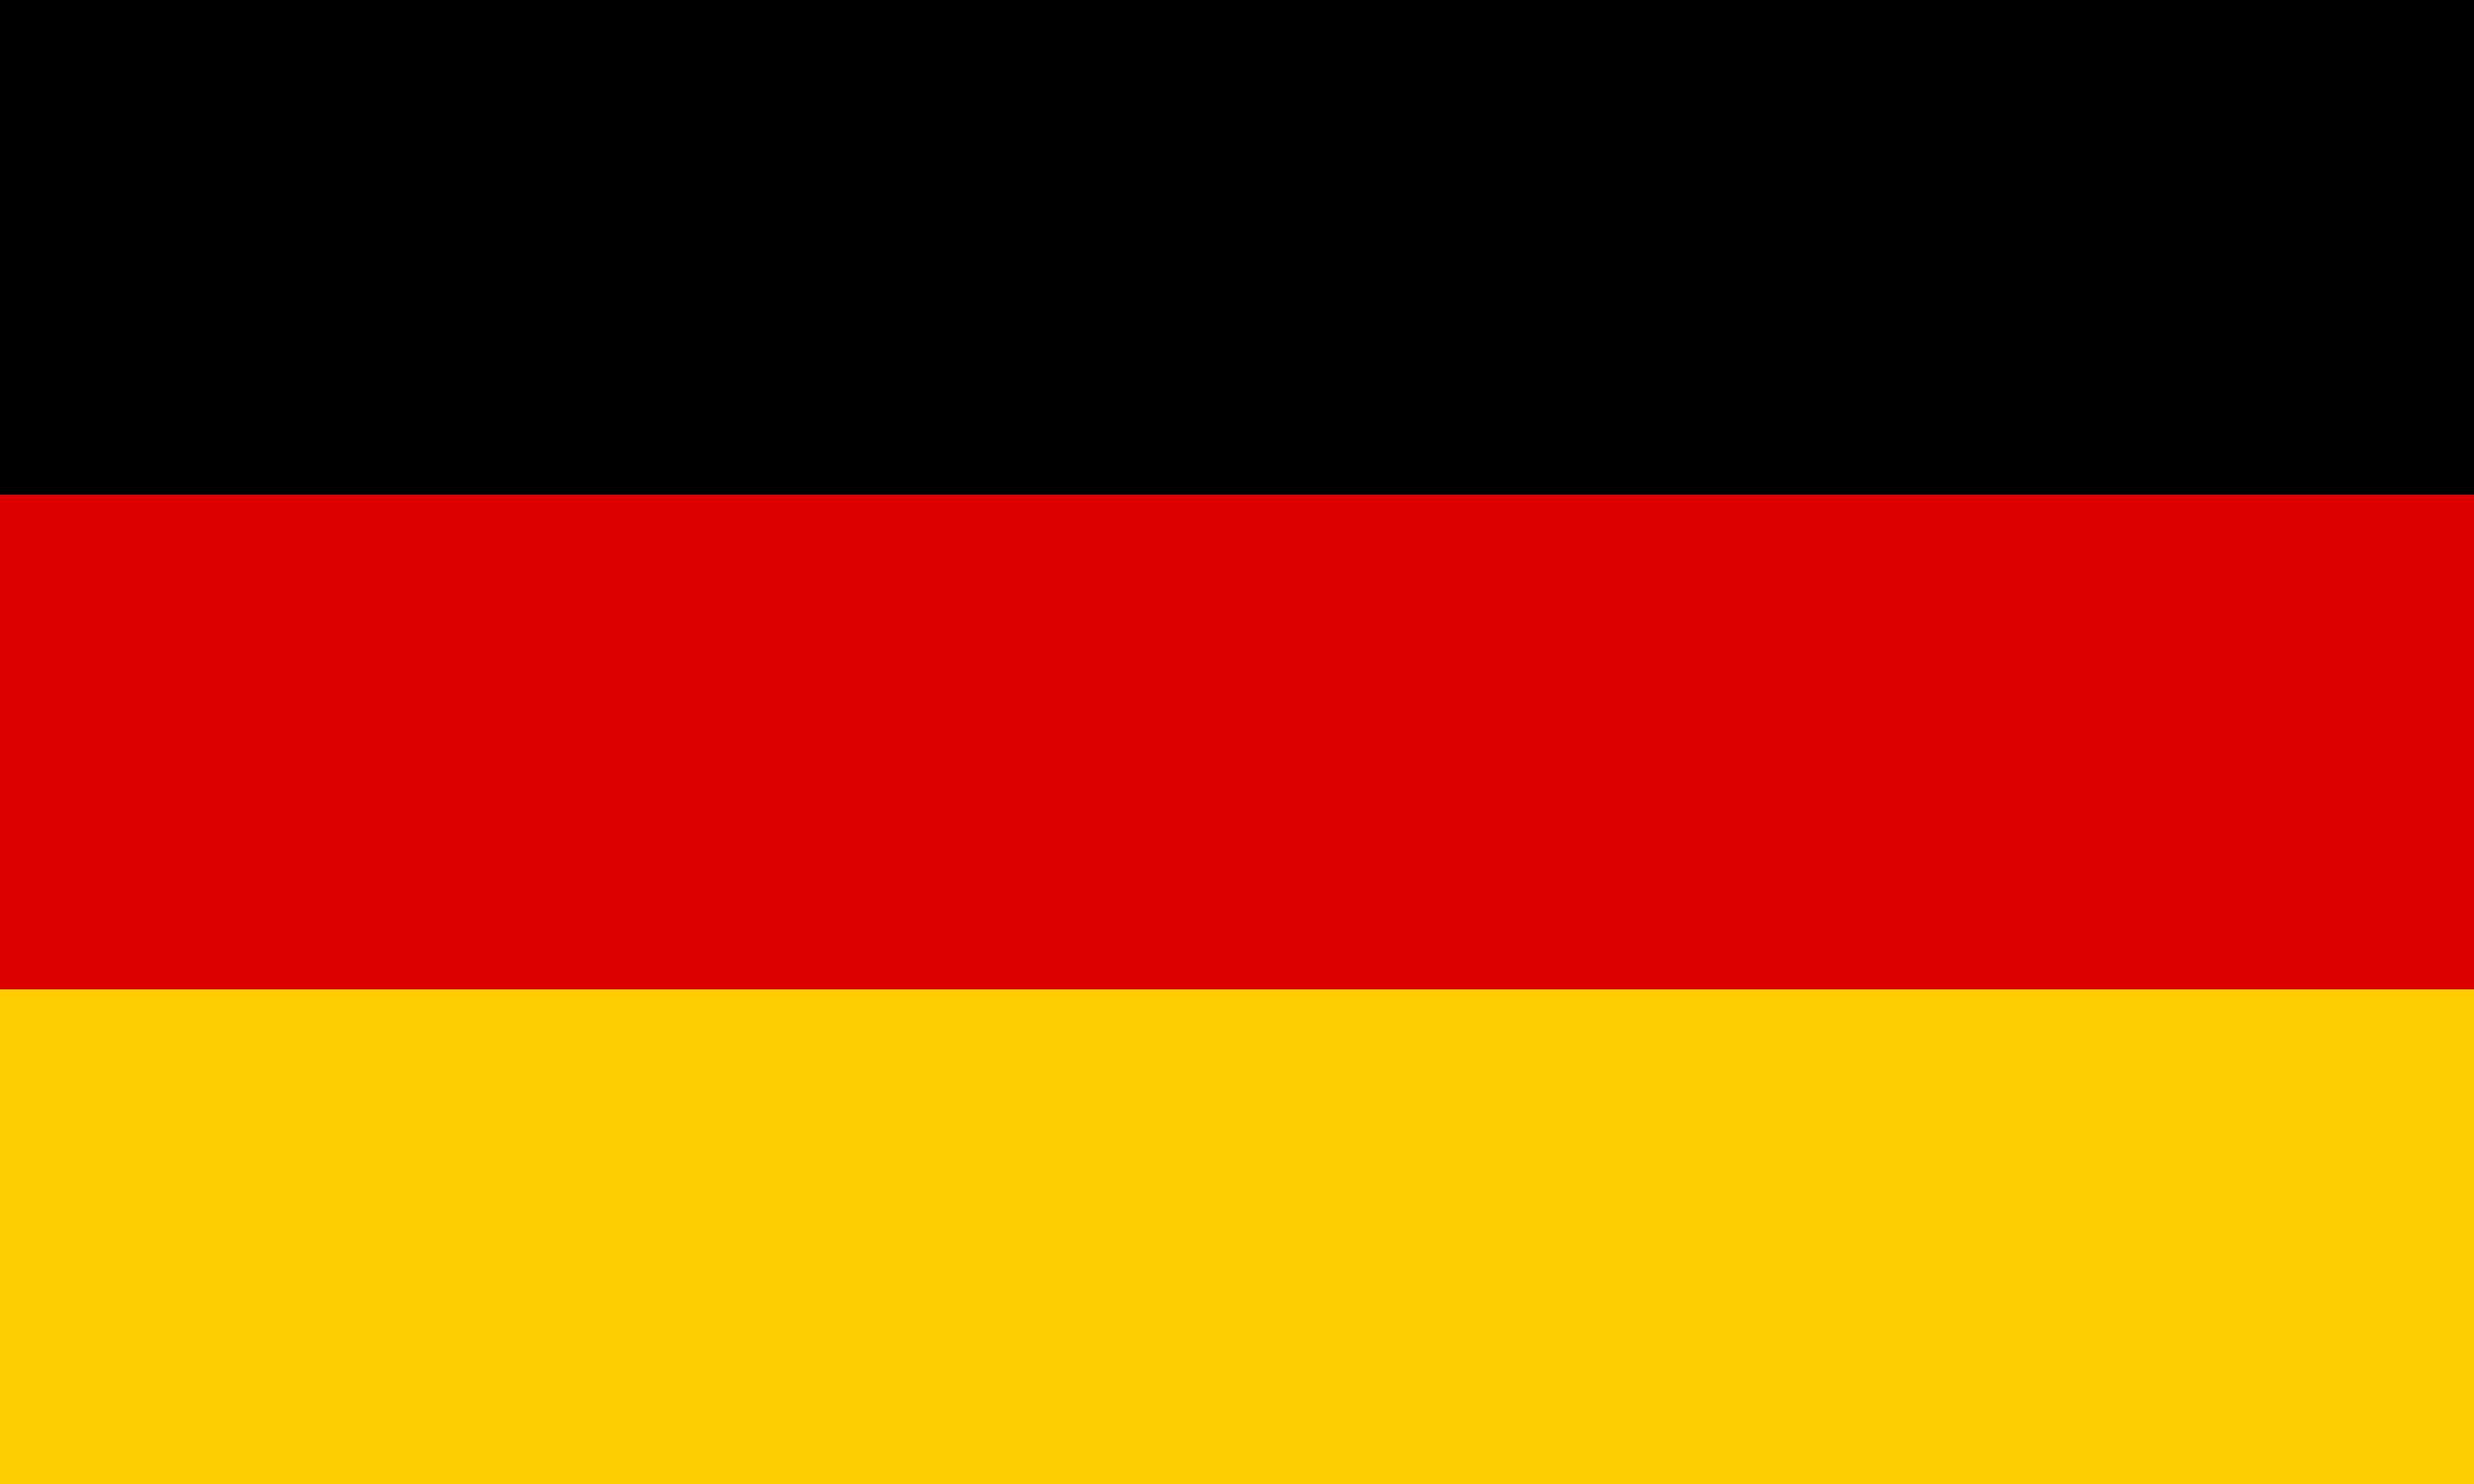 German Flag Icon Images & Pictures - Becuo